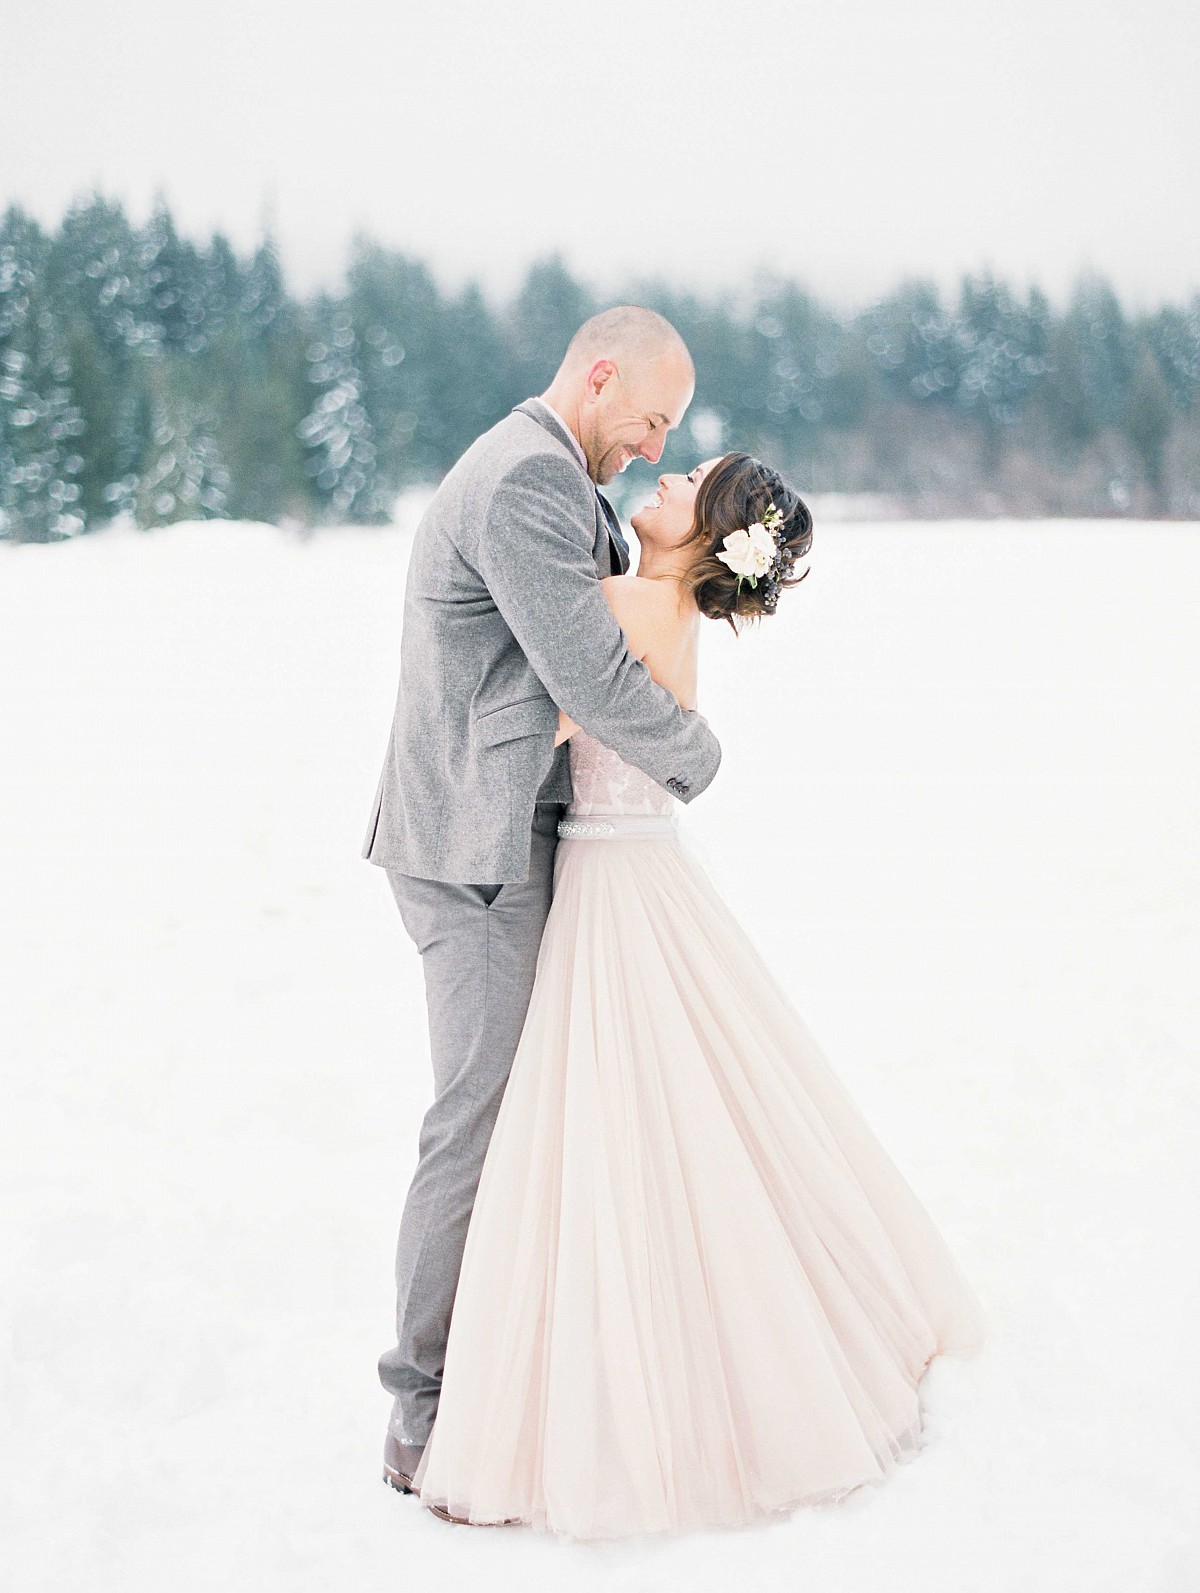 Winter Elopement in a BHLDN Gown